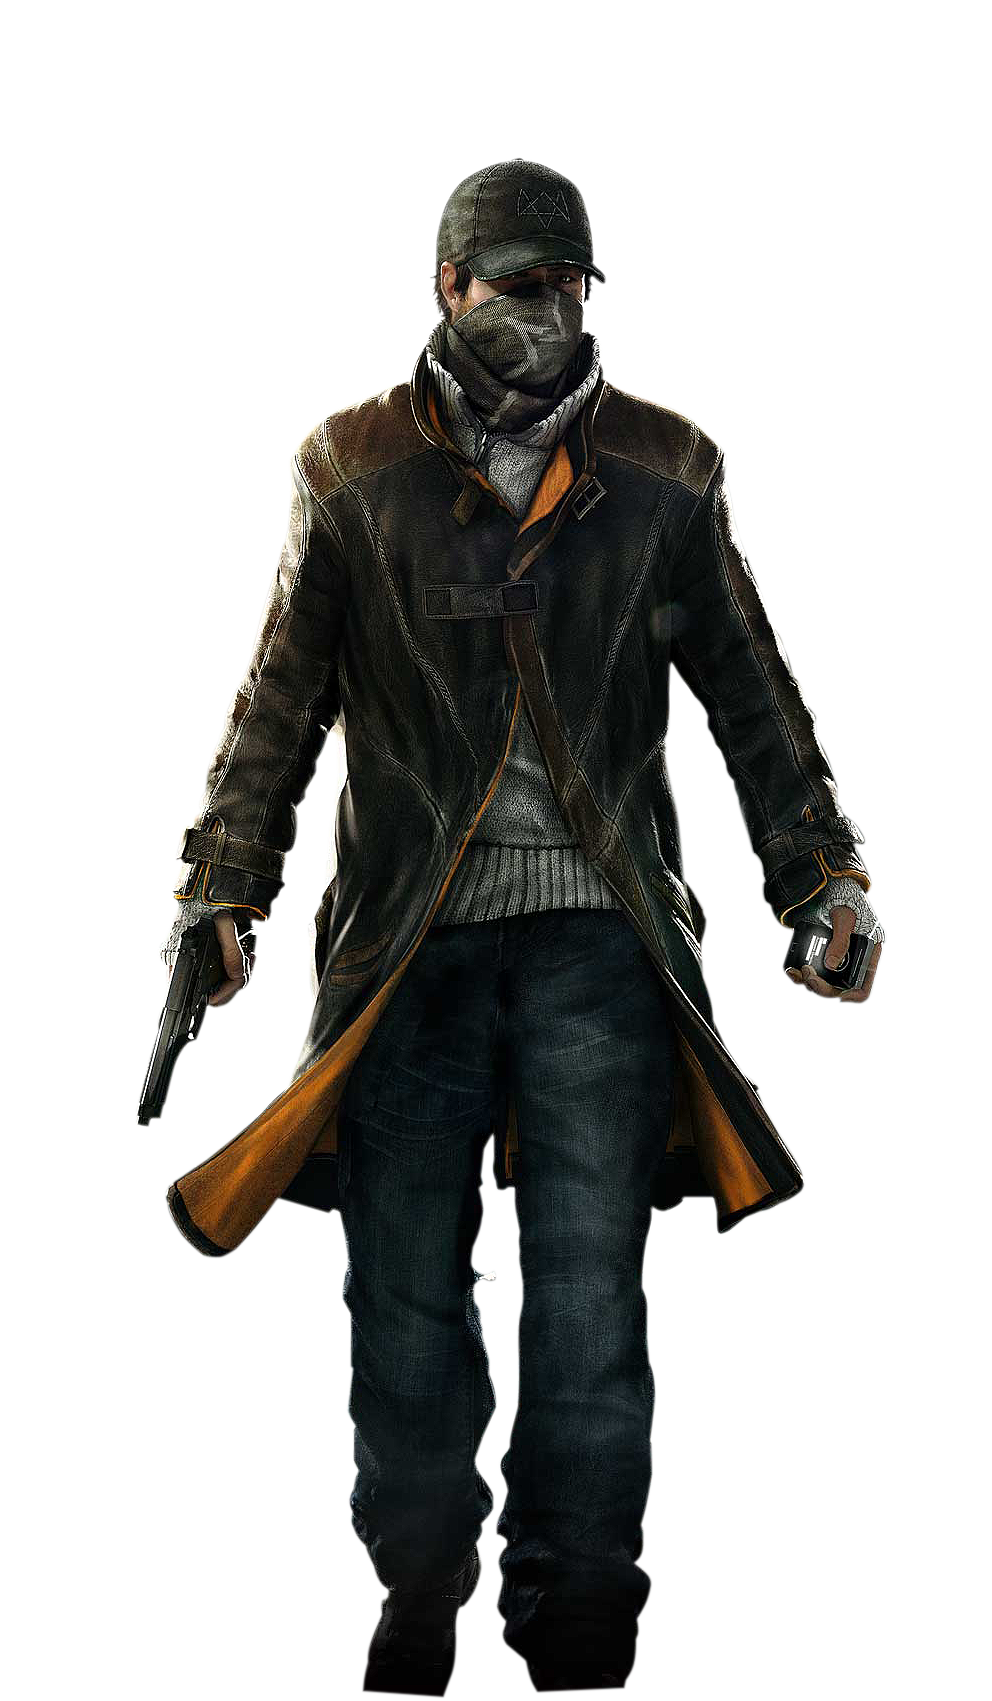 Watch dogs png. Transparent images pluspng download